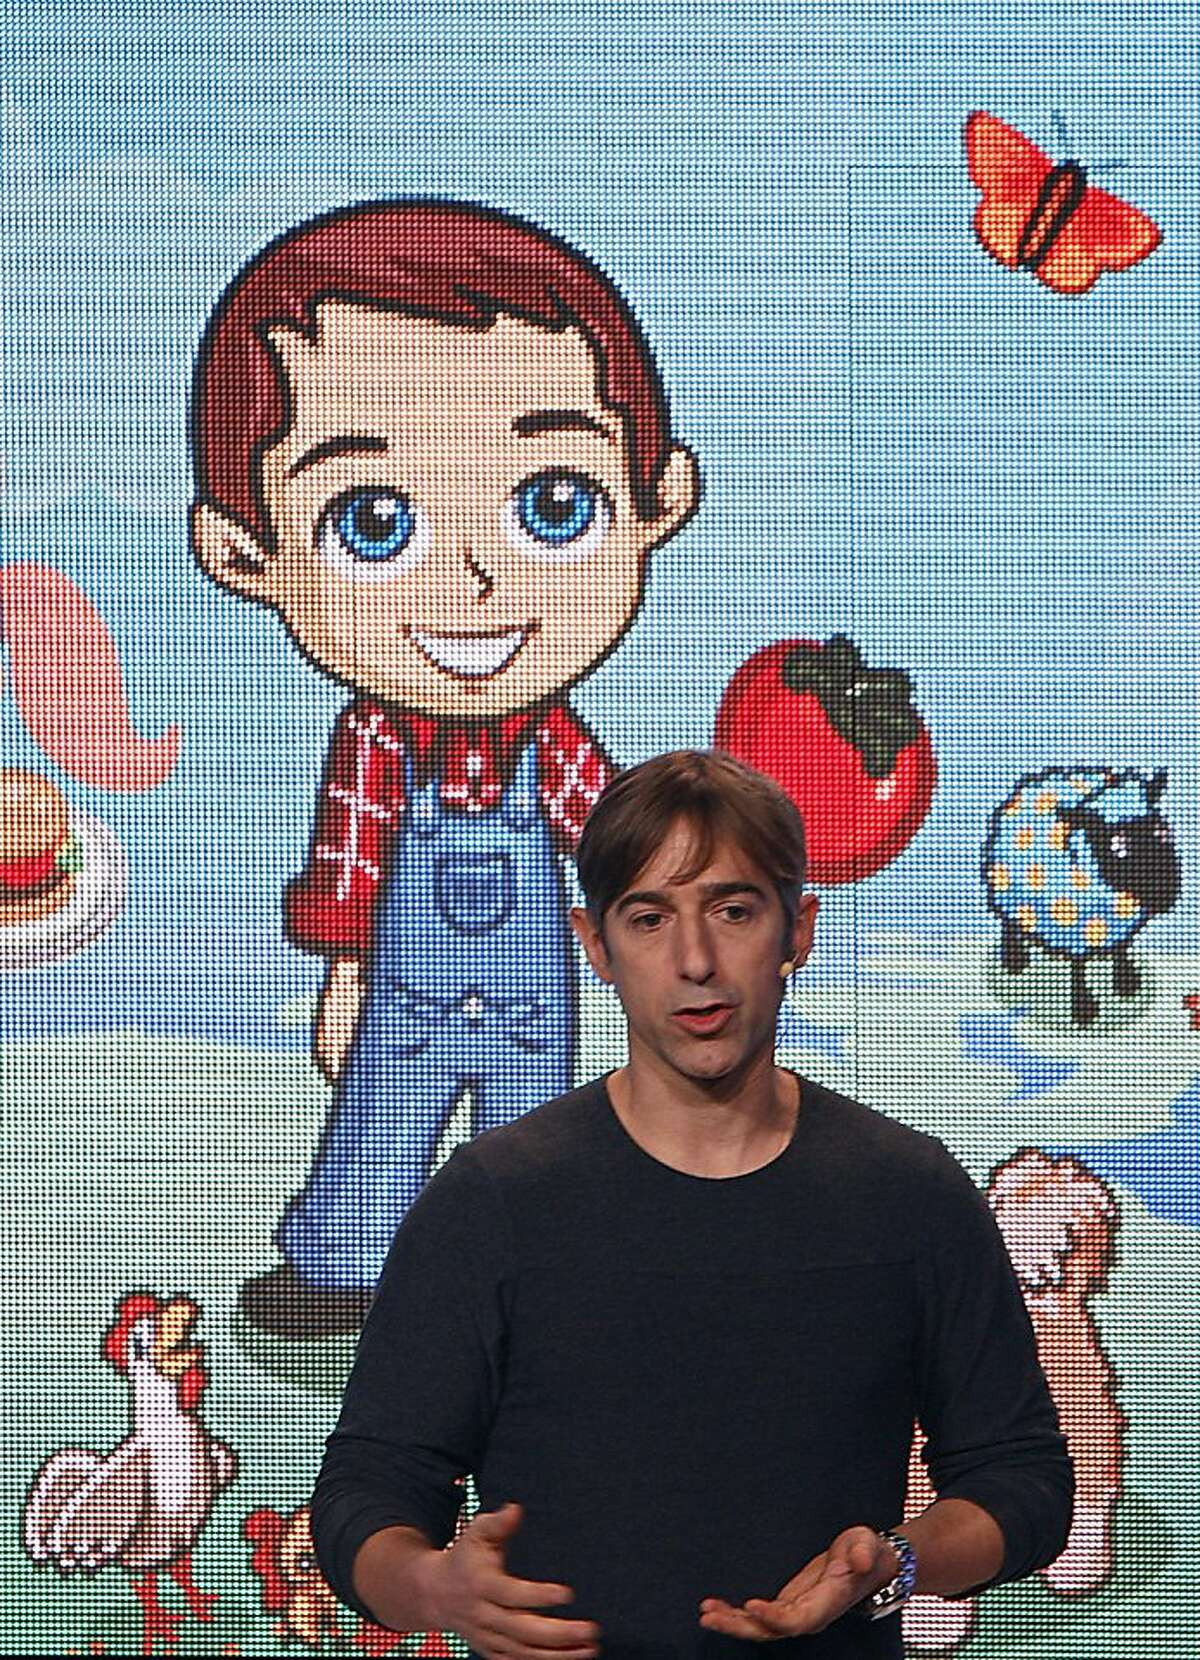 Zynga Inc. CEO and founder Marc Pincus speaking at a news conference at the new Zynga offices in San Francisco, California, on Tuesday, October 11, 2011.